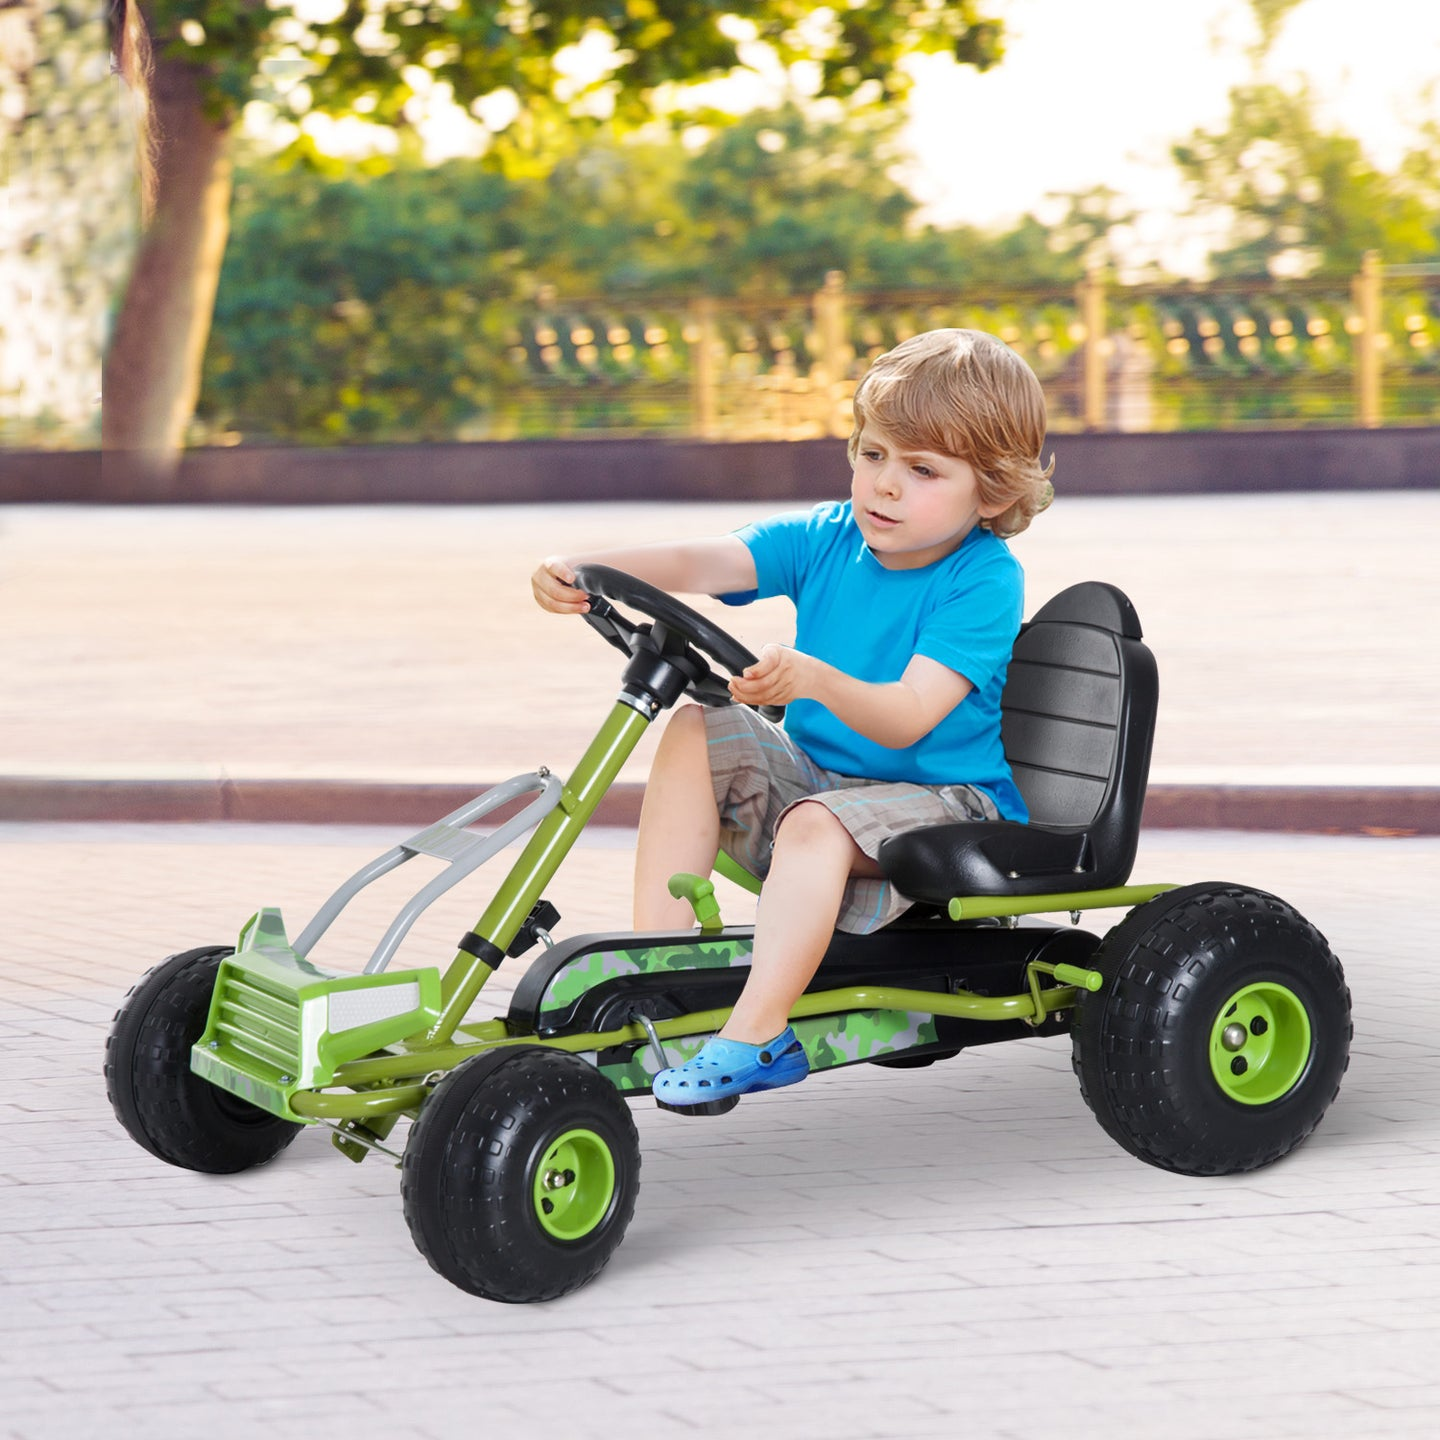 HOMCOM Kids Children Pedal Go Kart Ride on Car Adjustable Seat Braking System Ensure Safe Children Toy Gift - Green